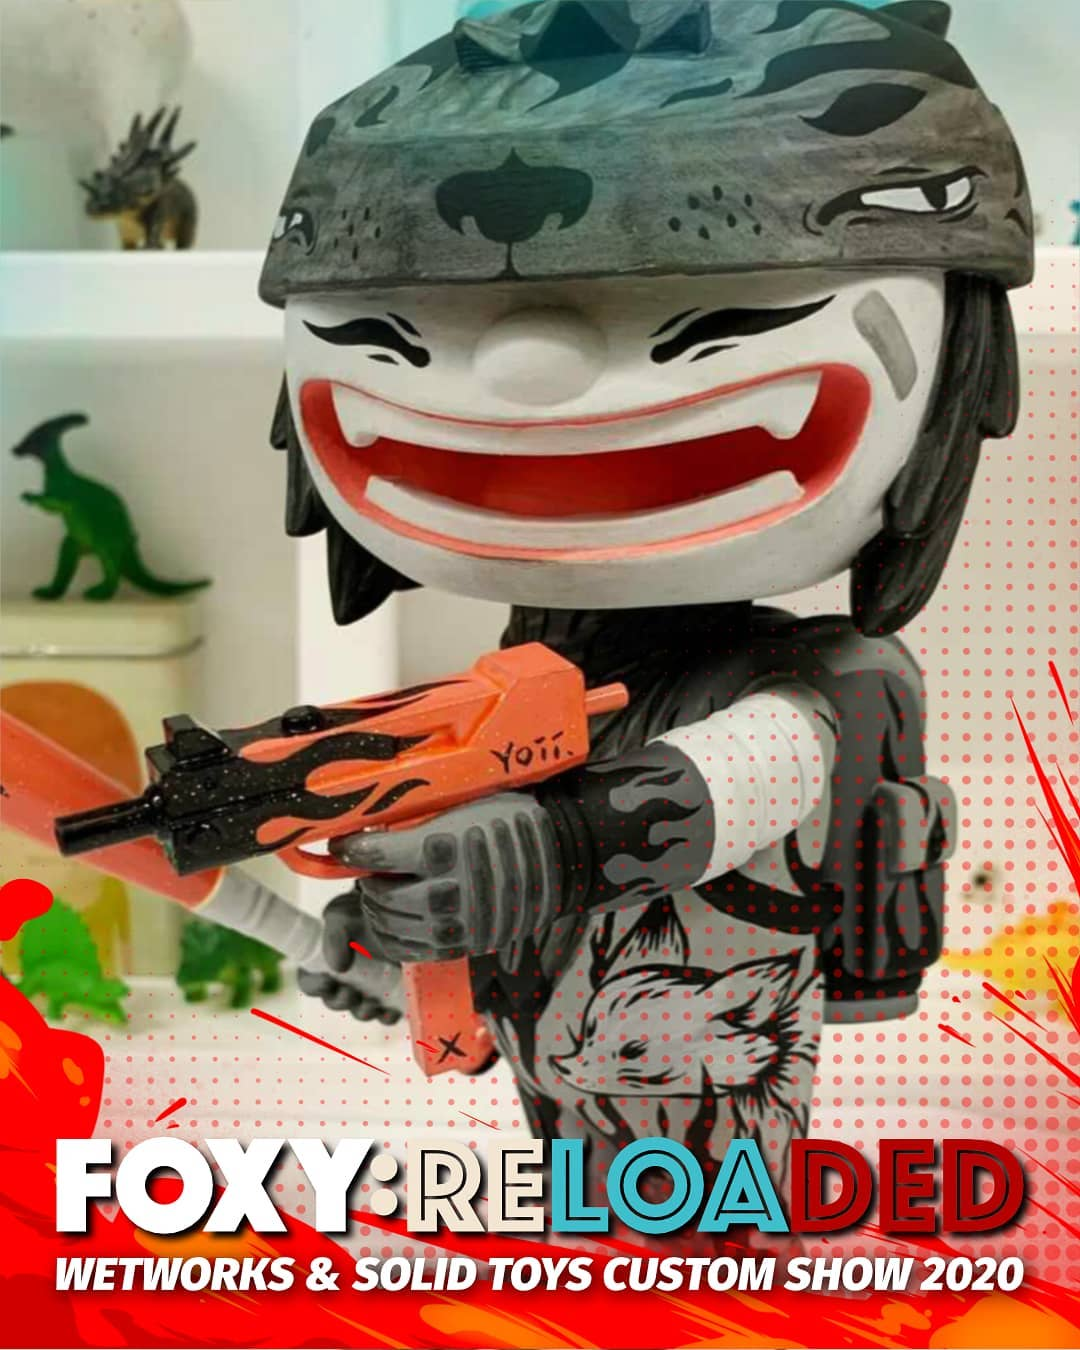 Yoii Foxy Reloaded Custom Toy